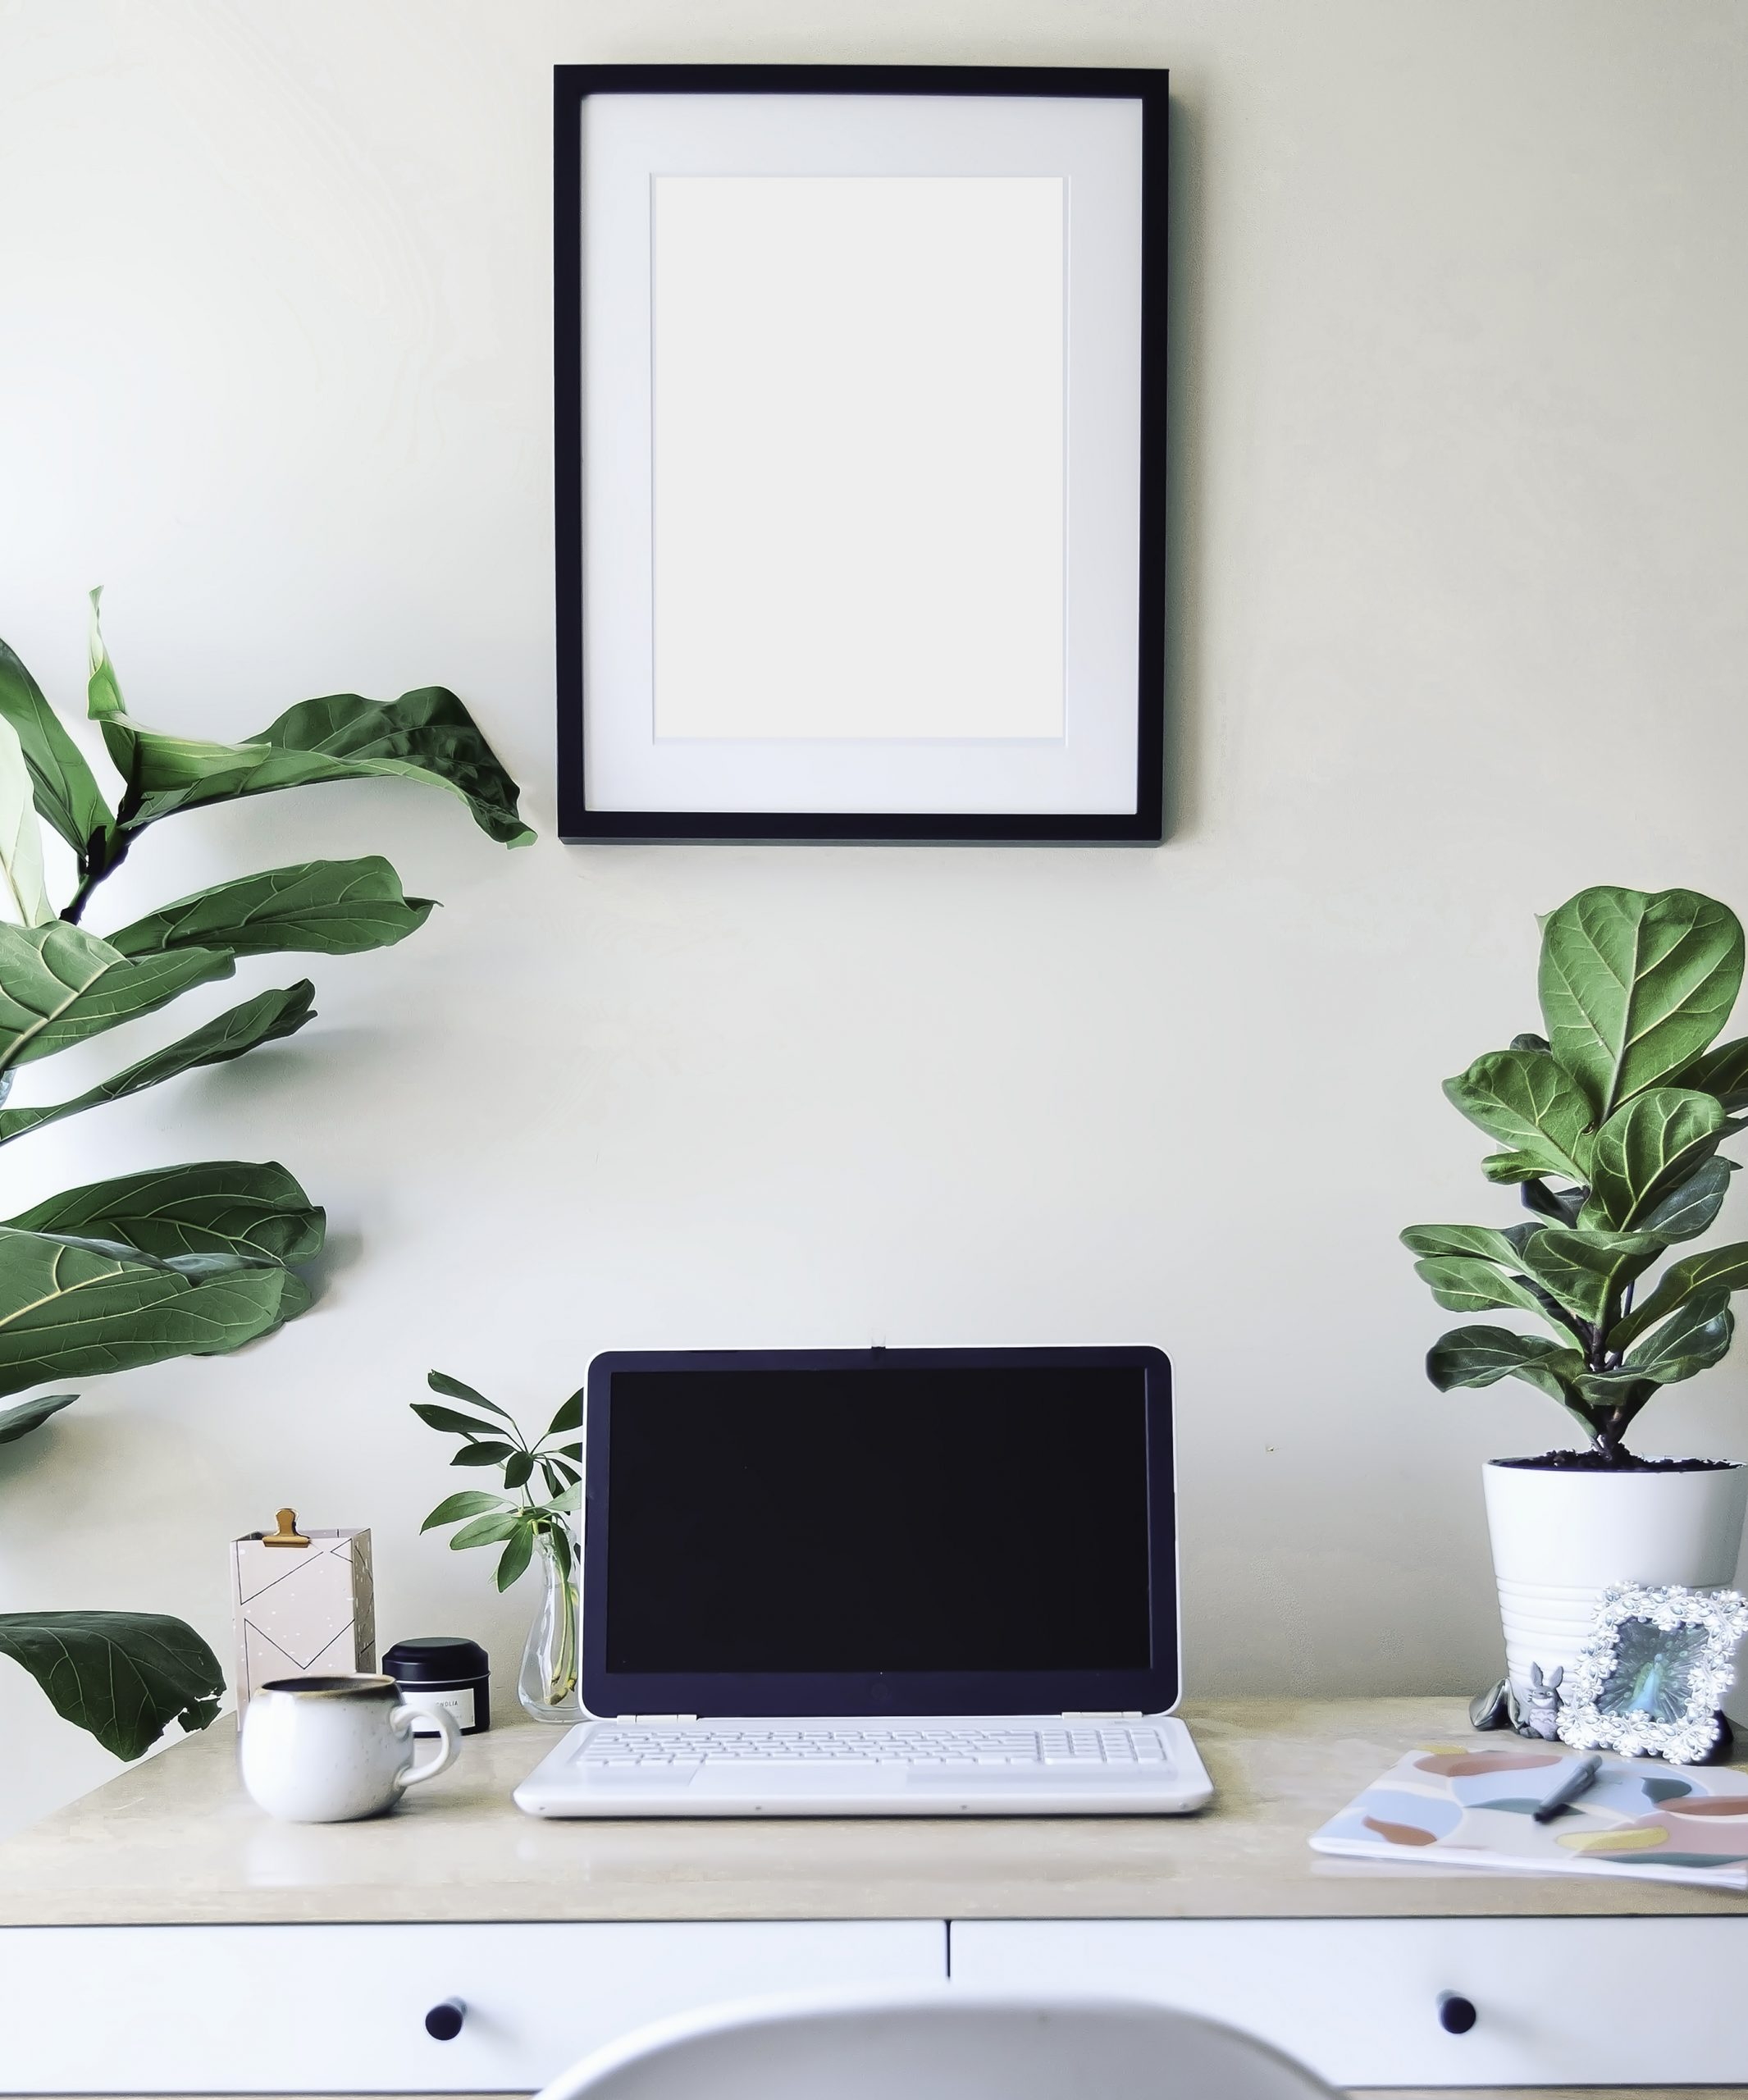 7 useful items to make working from home more productive